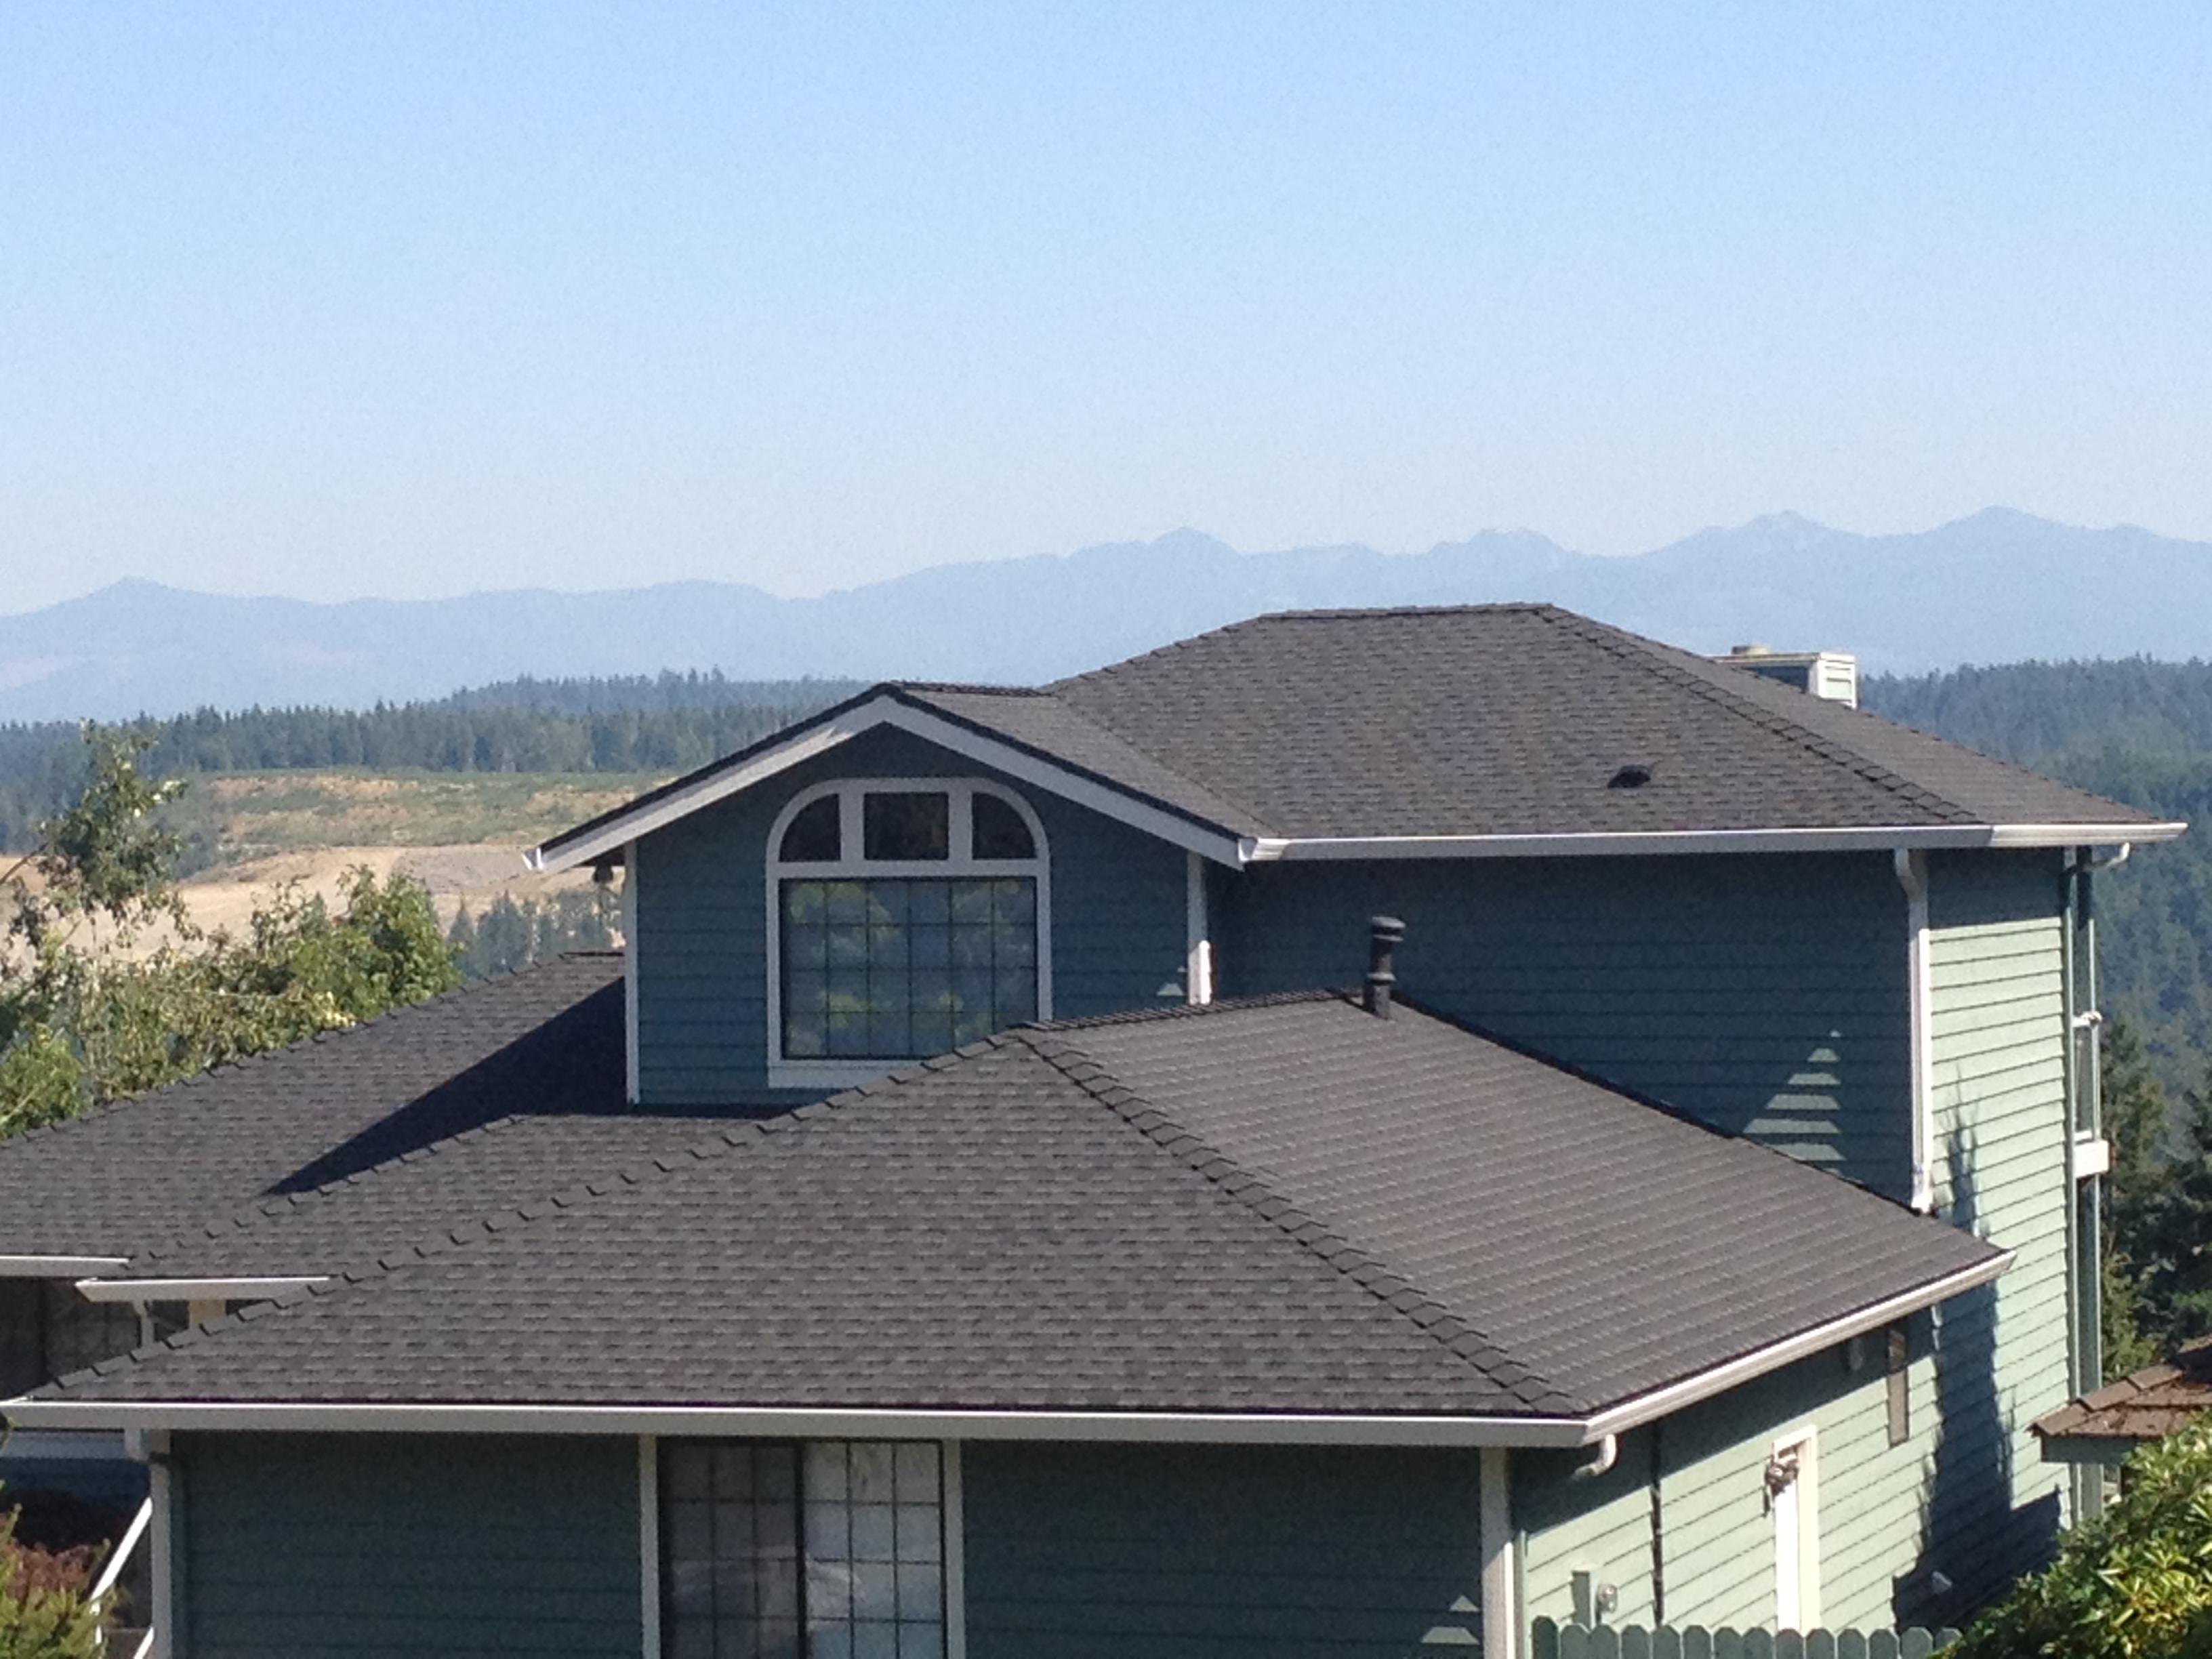 Roofing Company In Fife Wa Chase Construction North West